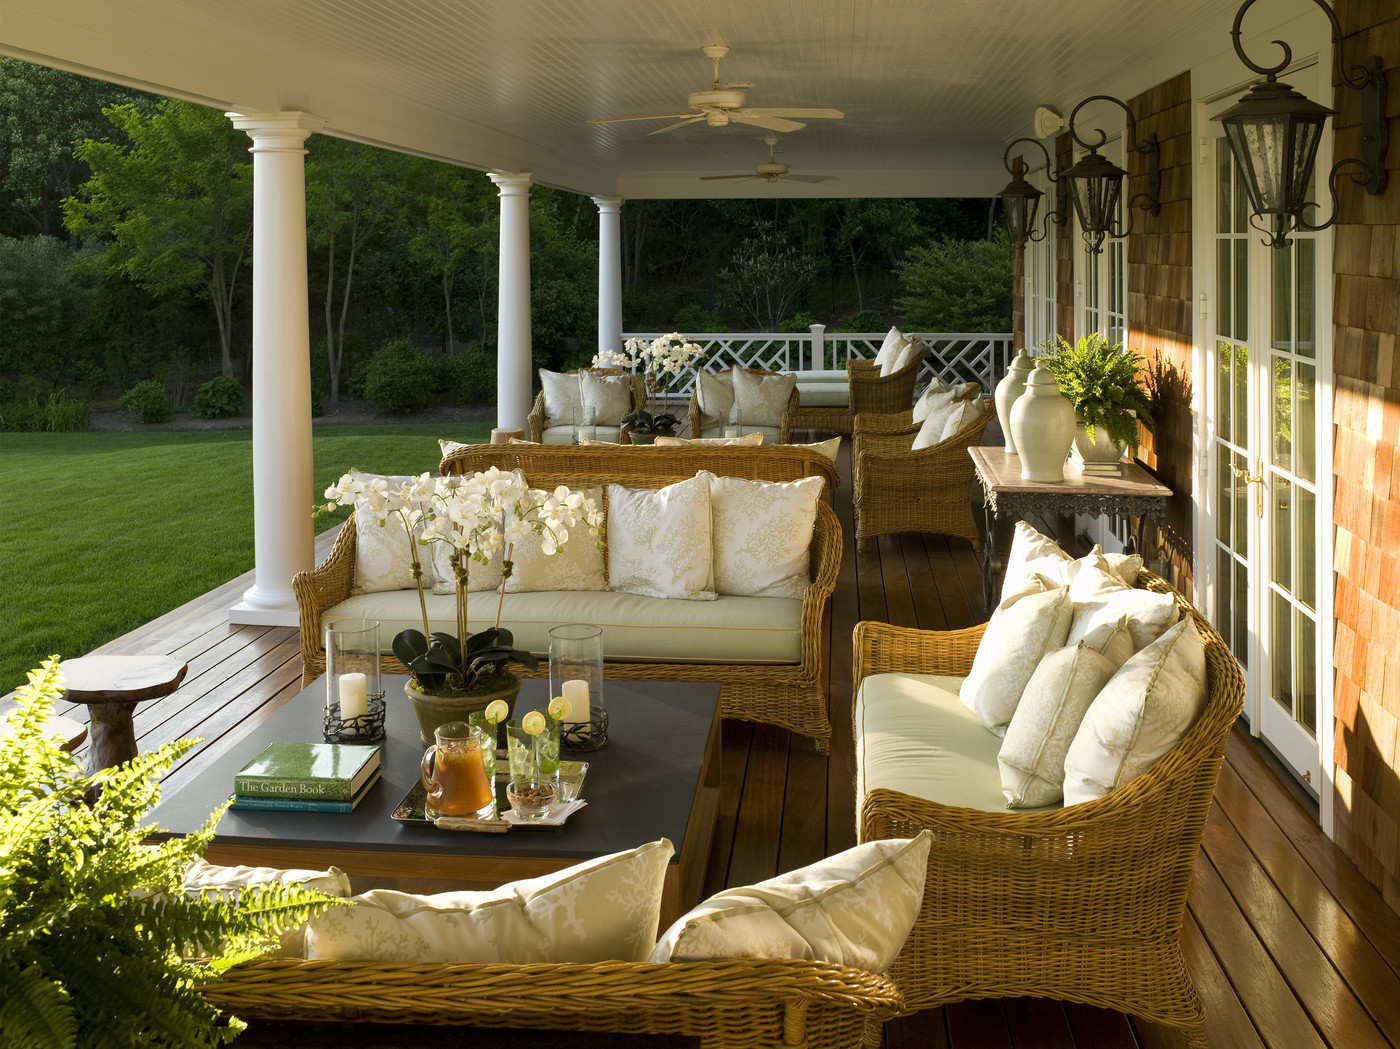 Brown Country Patio - Outdoor Patio Design Ideas - Lonny on Country Patio Ideas id=48459